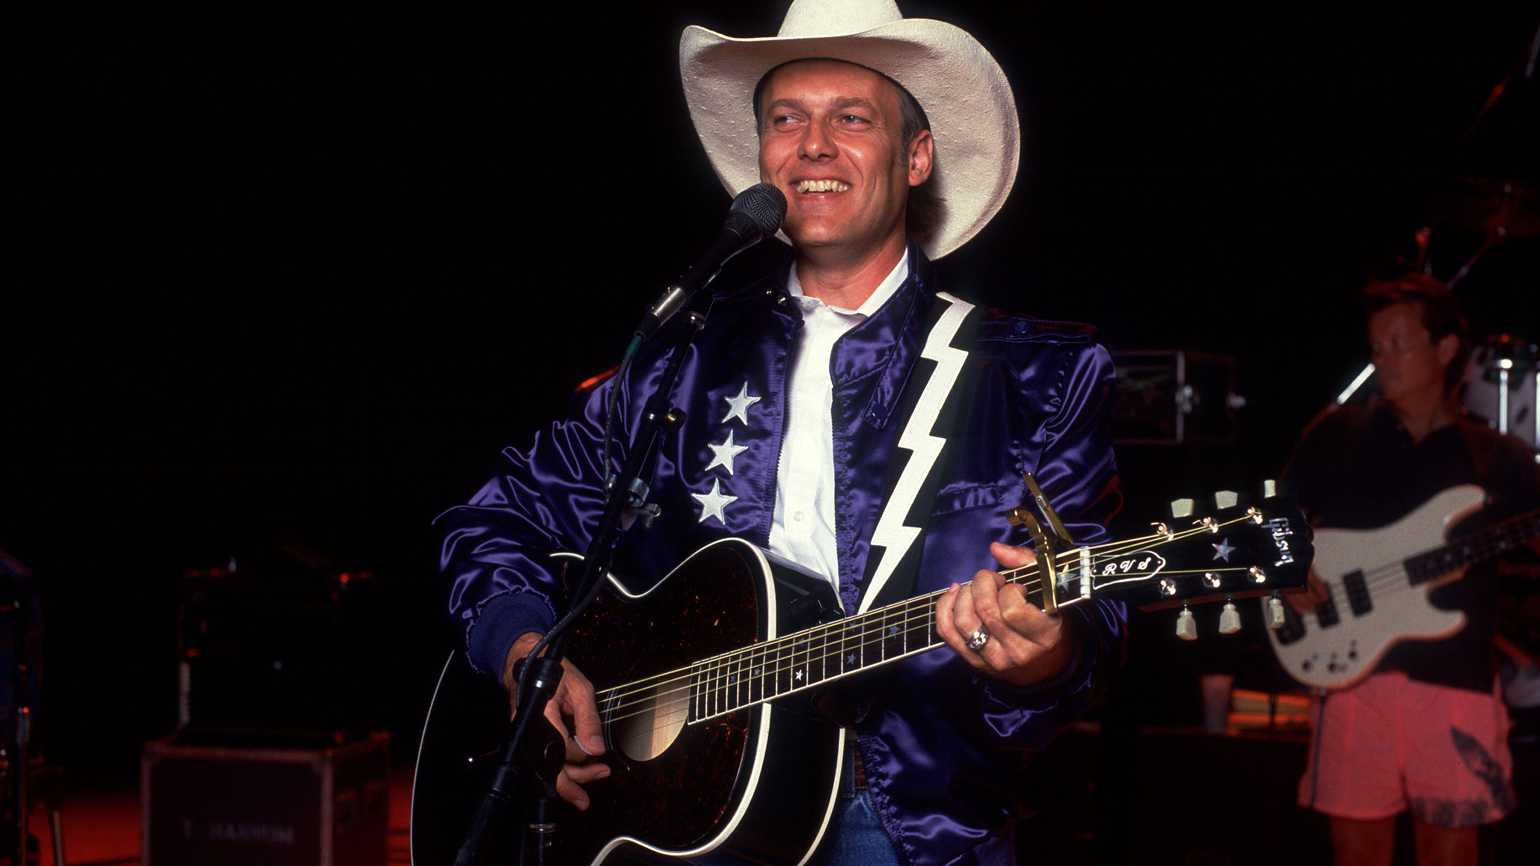 Rickie Van Shelton performing, Chicago, Illinois, August 2, 1988.